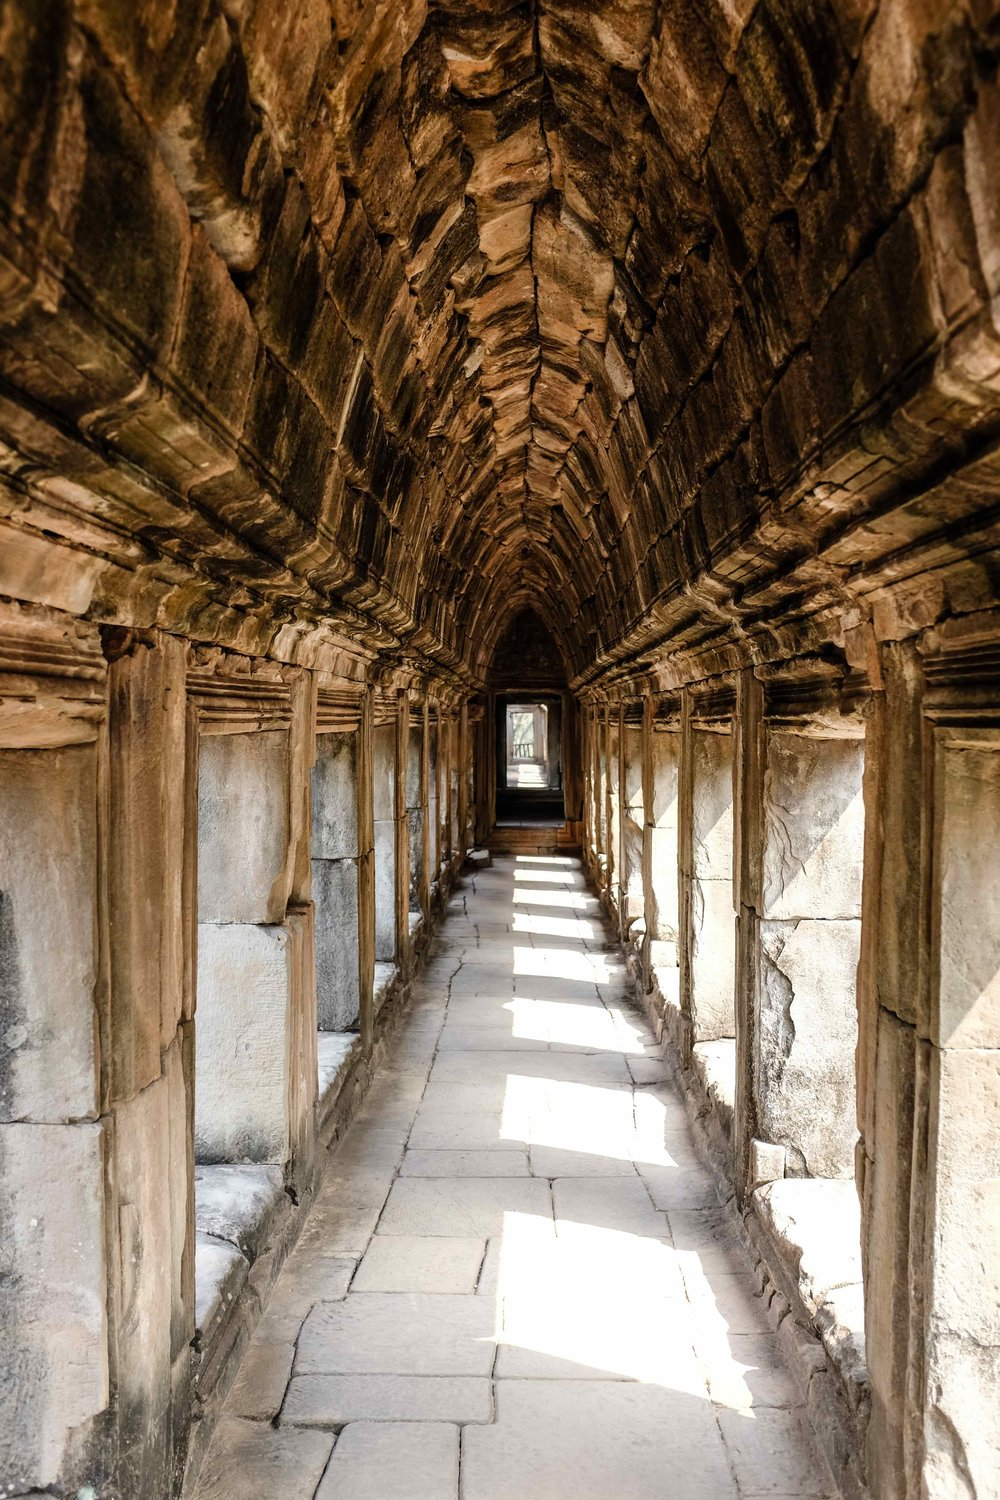 Corridors around the Royal Palace.